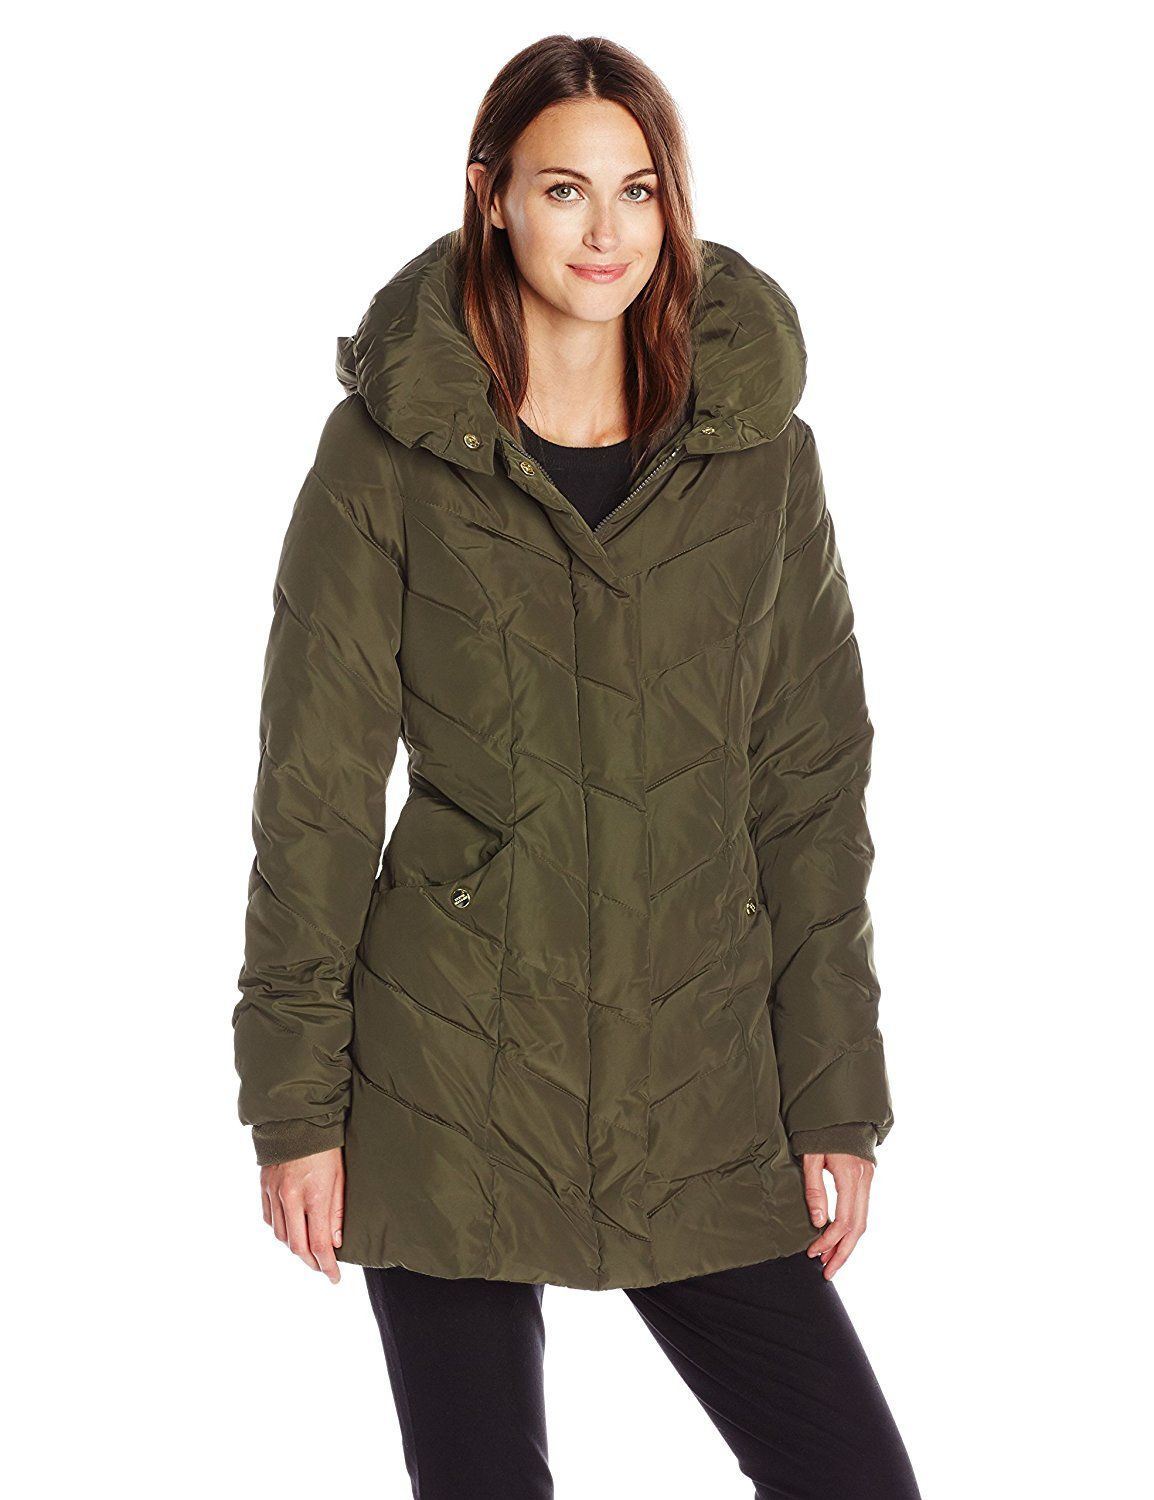 Steve Madden Women's Chevron Packable Puffer Coat with